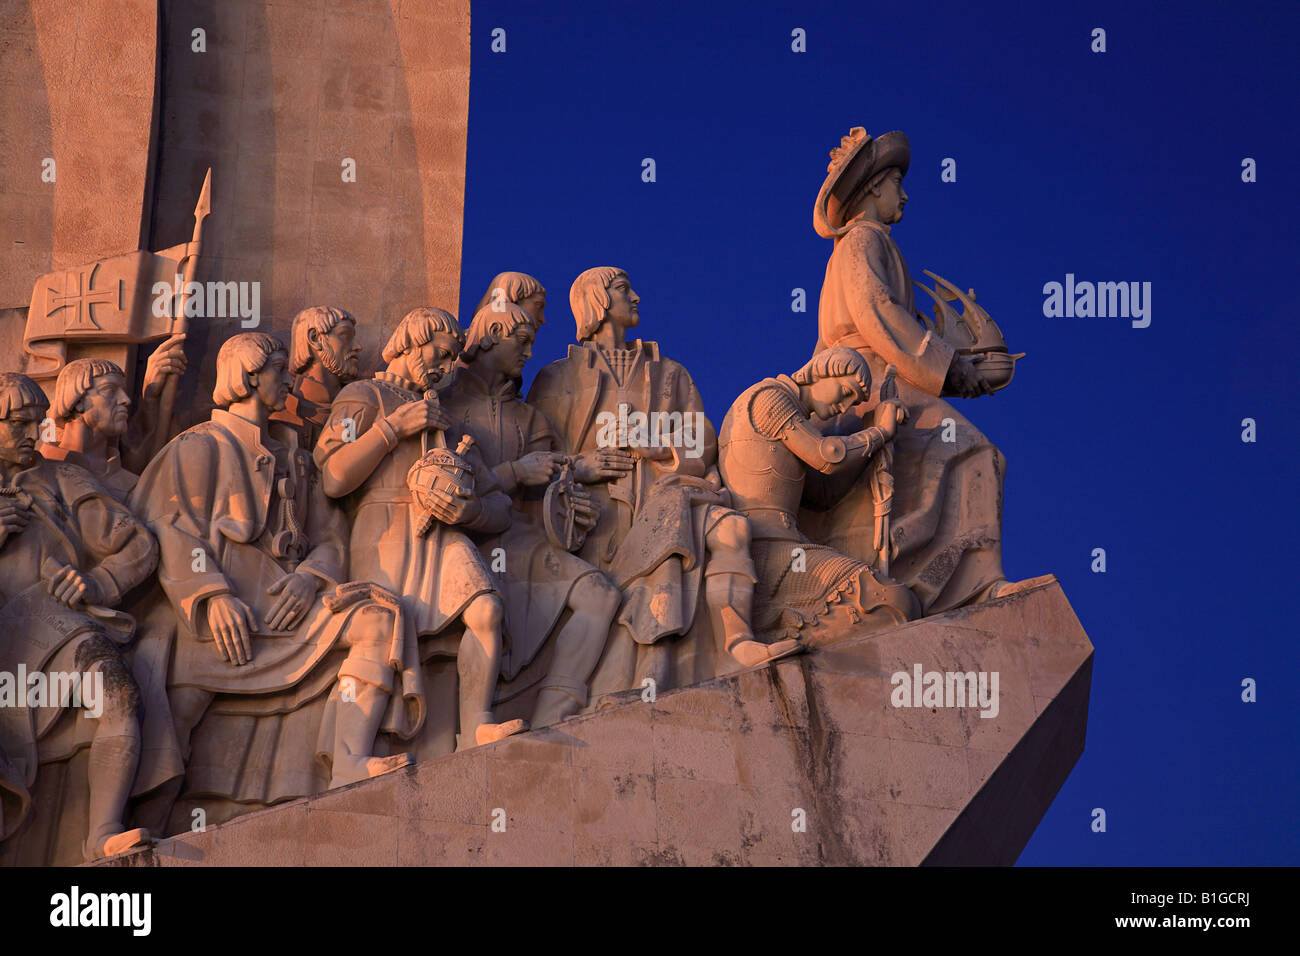 Padrao dos Descobrimentos at night, seafaring memorial, Lisbon, Portugal - Stock Image